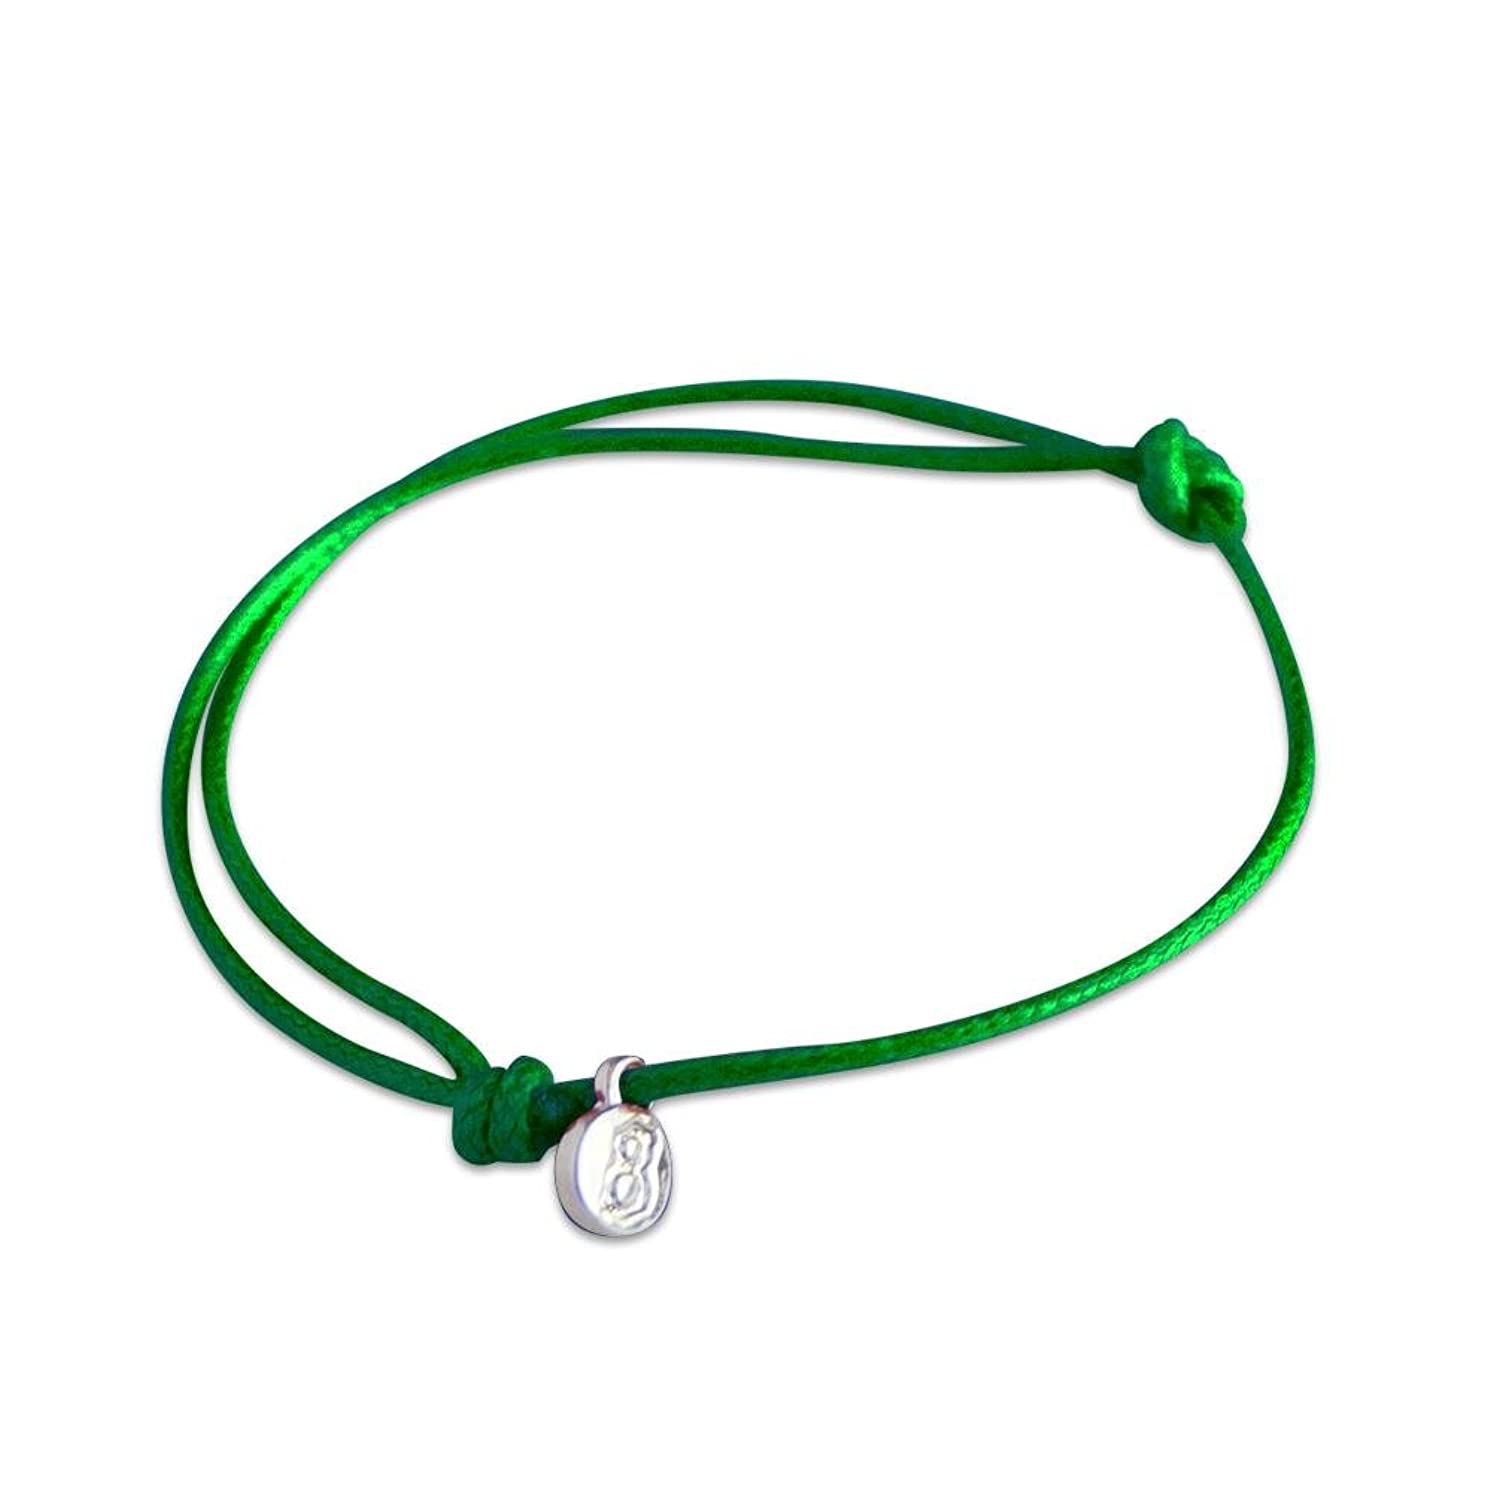 st8te - Adjustable Men's and Women's Rope Anklet. Adjustable Waterproof Anklet or XL Bracelet Available in Various Colors & Finishes